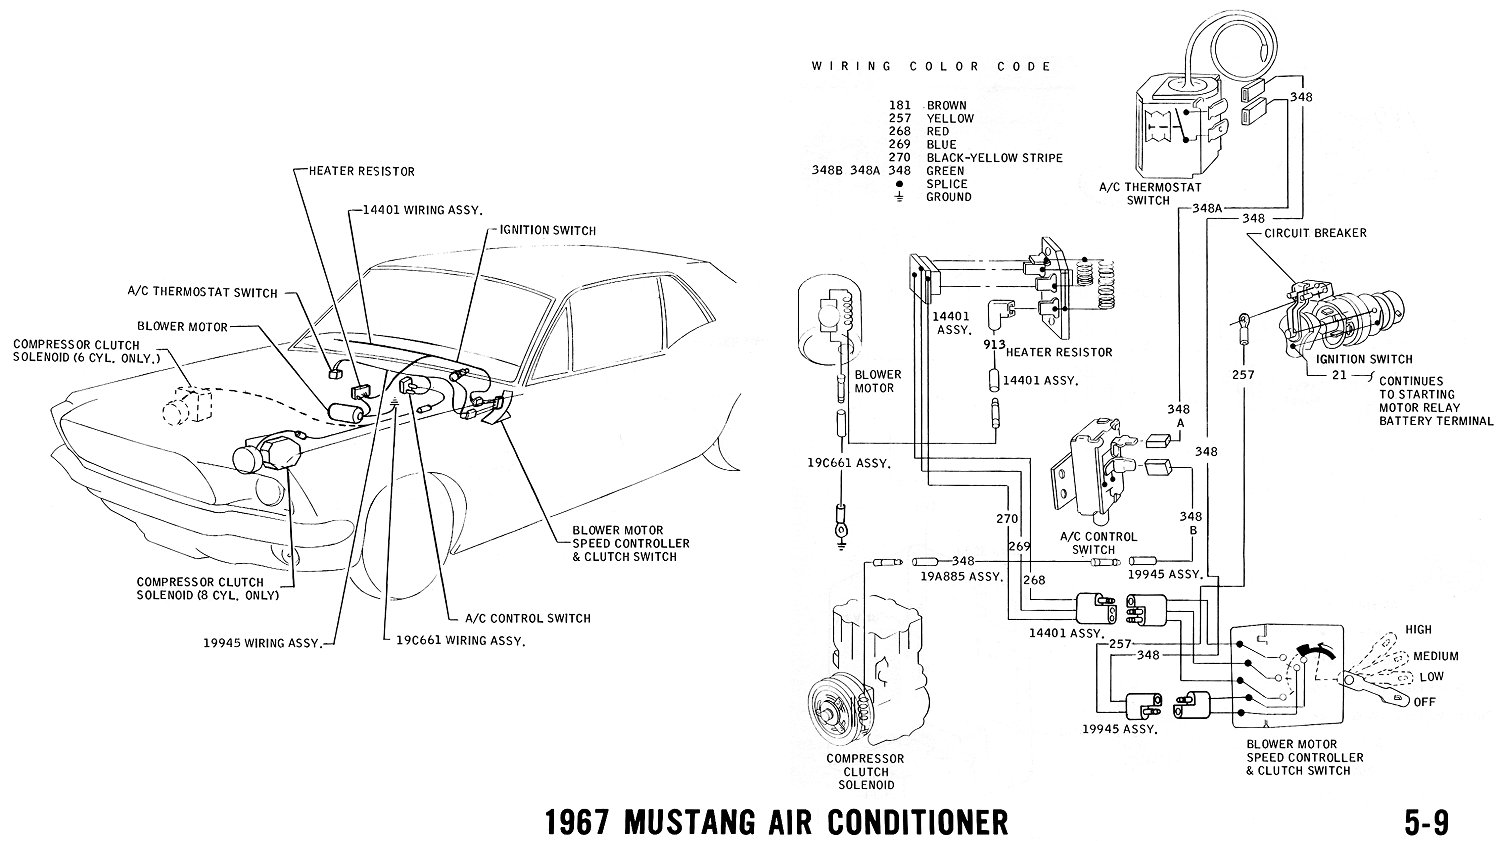 67ac 1967 mustang wiring and vacuum diagrams average joe restoration 1965 Mustang Wiring Diagram at nearapp.co